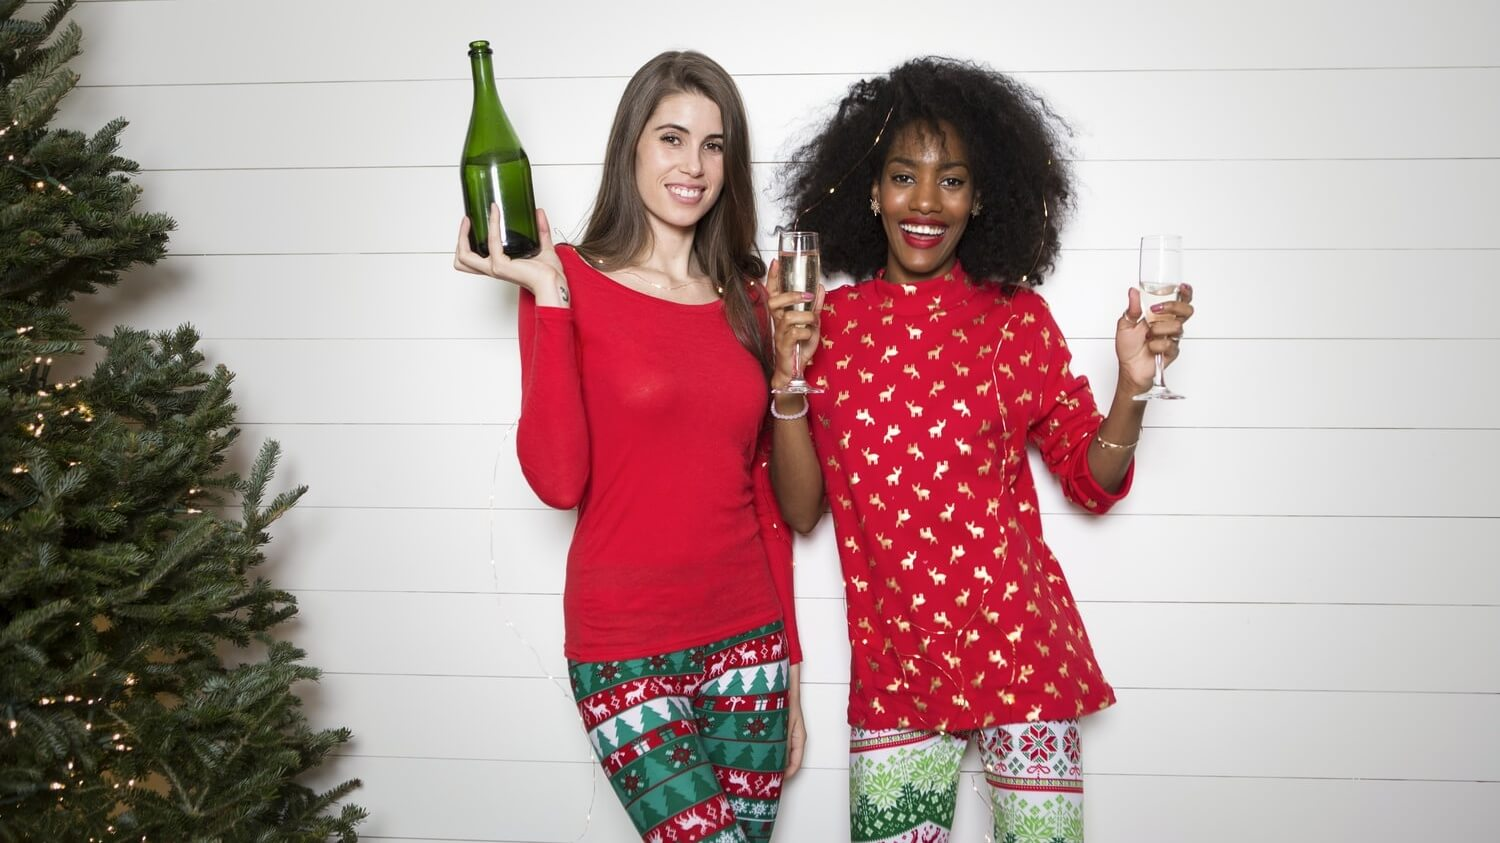 13 Vegan Booze Brands and Recipes for Christmas